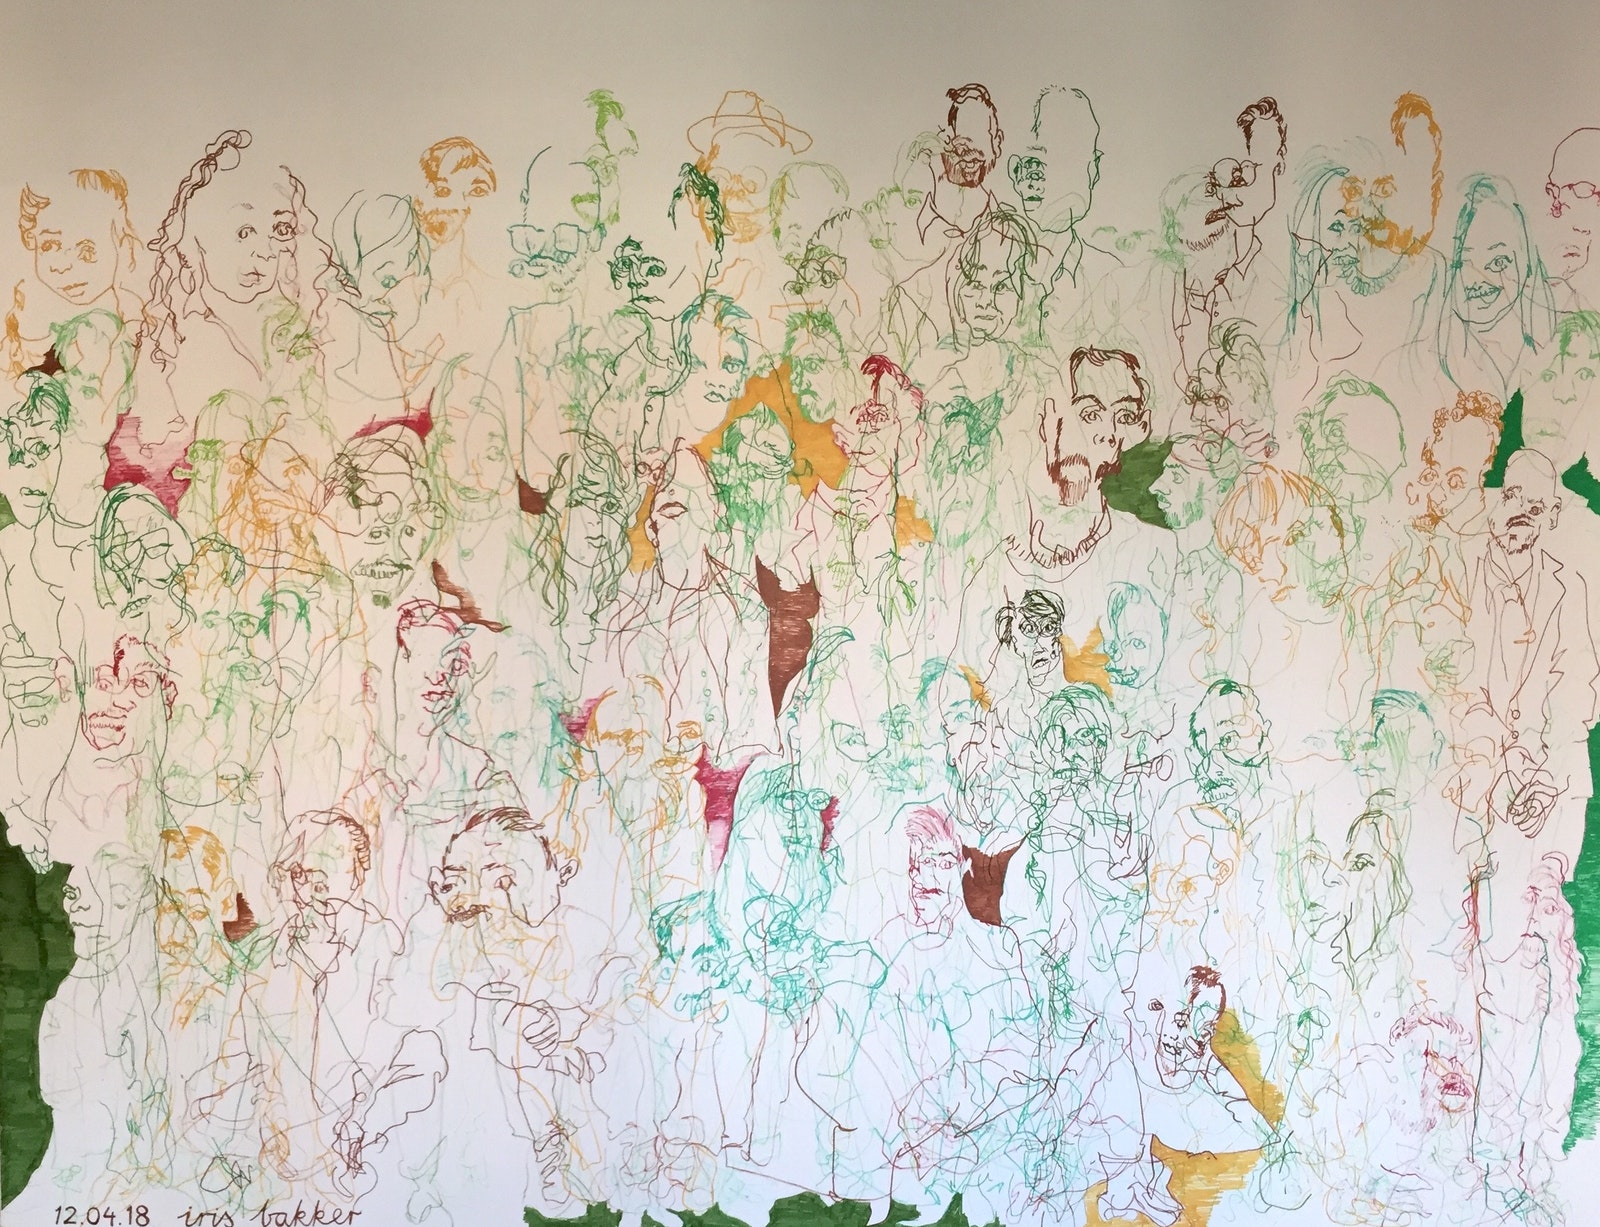 Bespoke mural at Dentsu Aegis Network by Iris Bakker